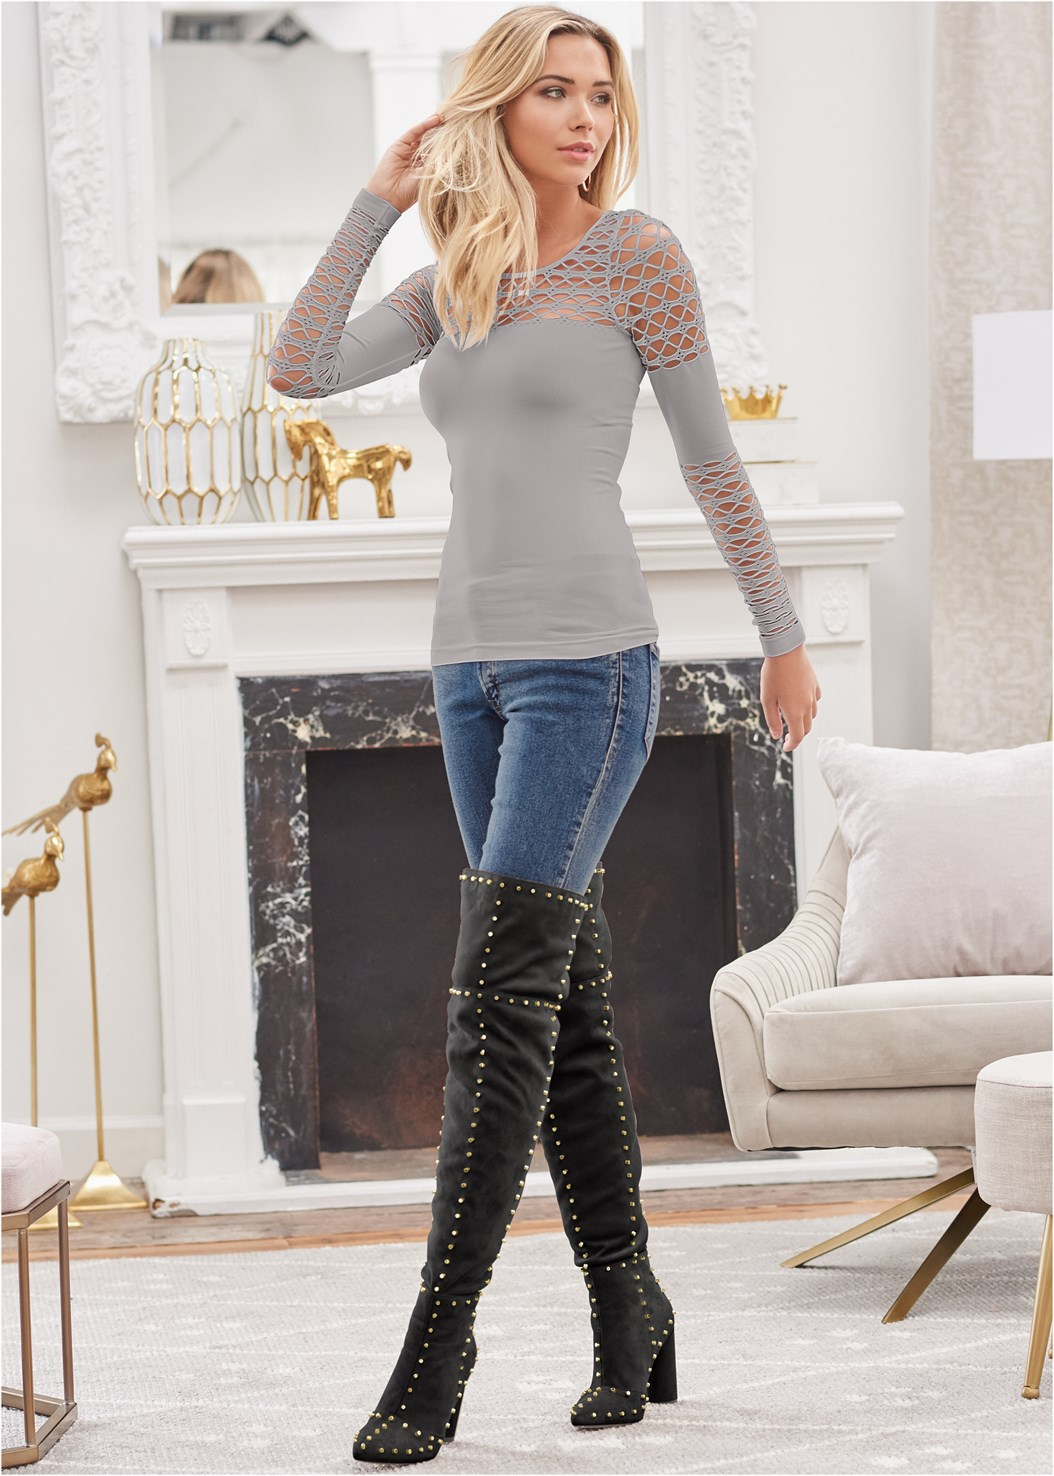 Seamless Fitted Cut Out Top,Mid Rise Color Skinny Jeans,Reversible Jeans,Faux Leather Pants,Smooth Longline Push Up Bra,Block Heel Boots,Studded Over The Knee Boots,Rhinestone Fringe Earrings,Crisscross Choker,Stud Detail Belt